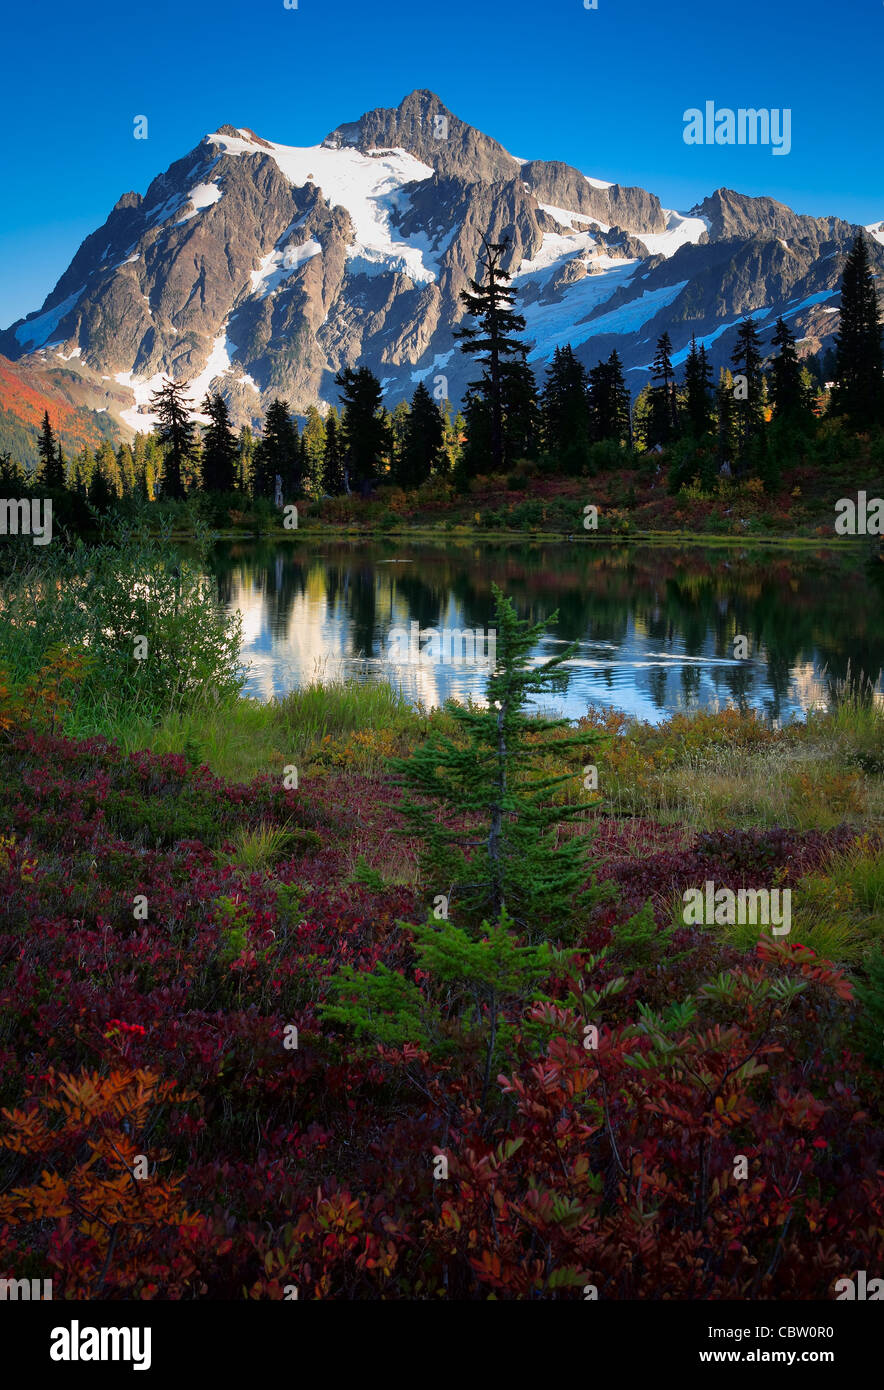 Mount Shuksan in Washington state's North Cascades National Park reflecting in Picture Lake - Stock Image